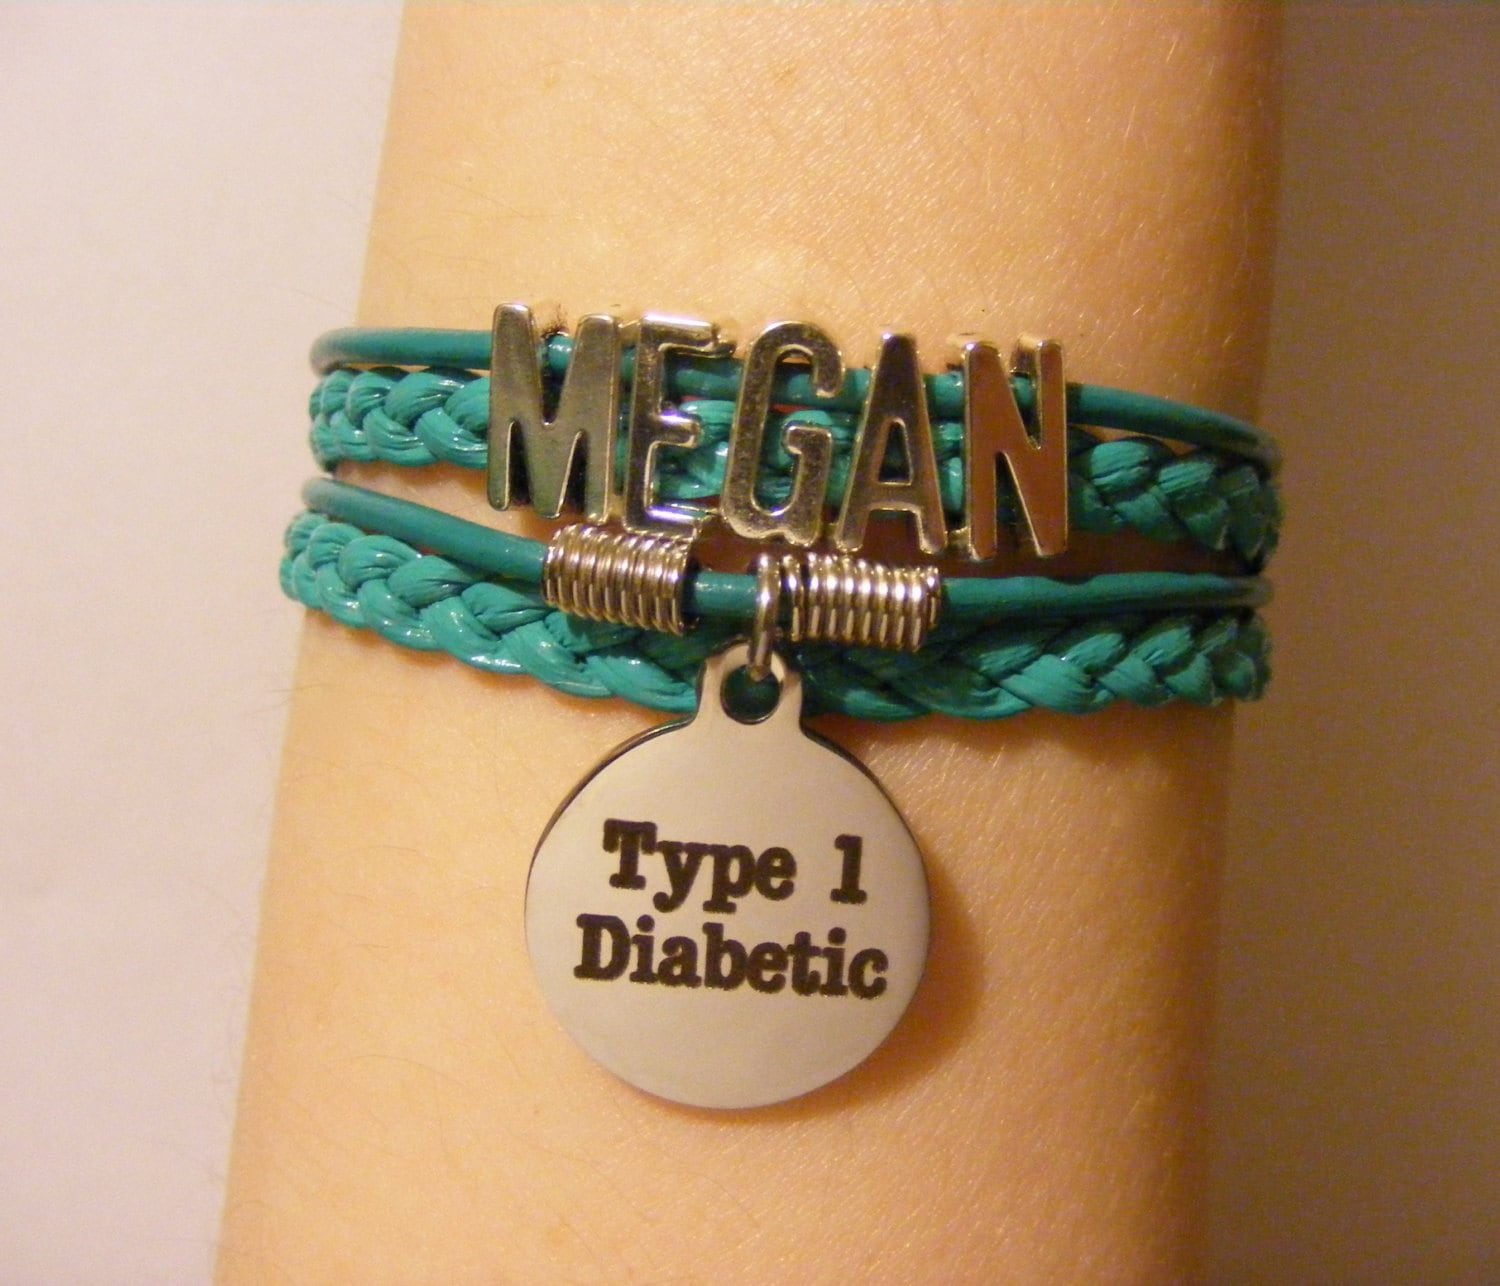 diabetic bracelets lynx health diabetes onyx id bracelet best type